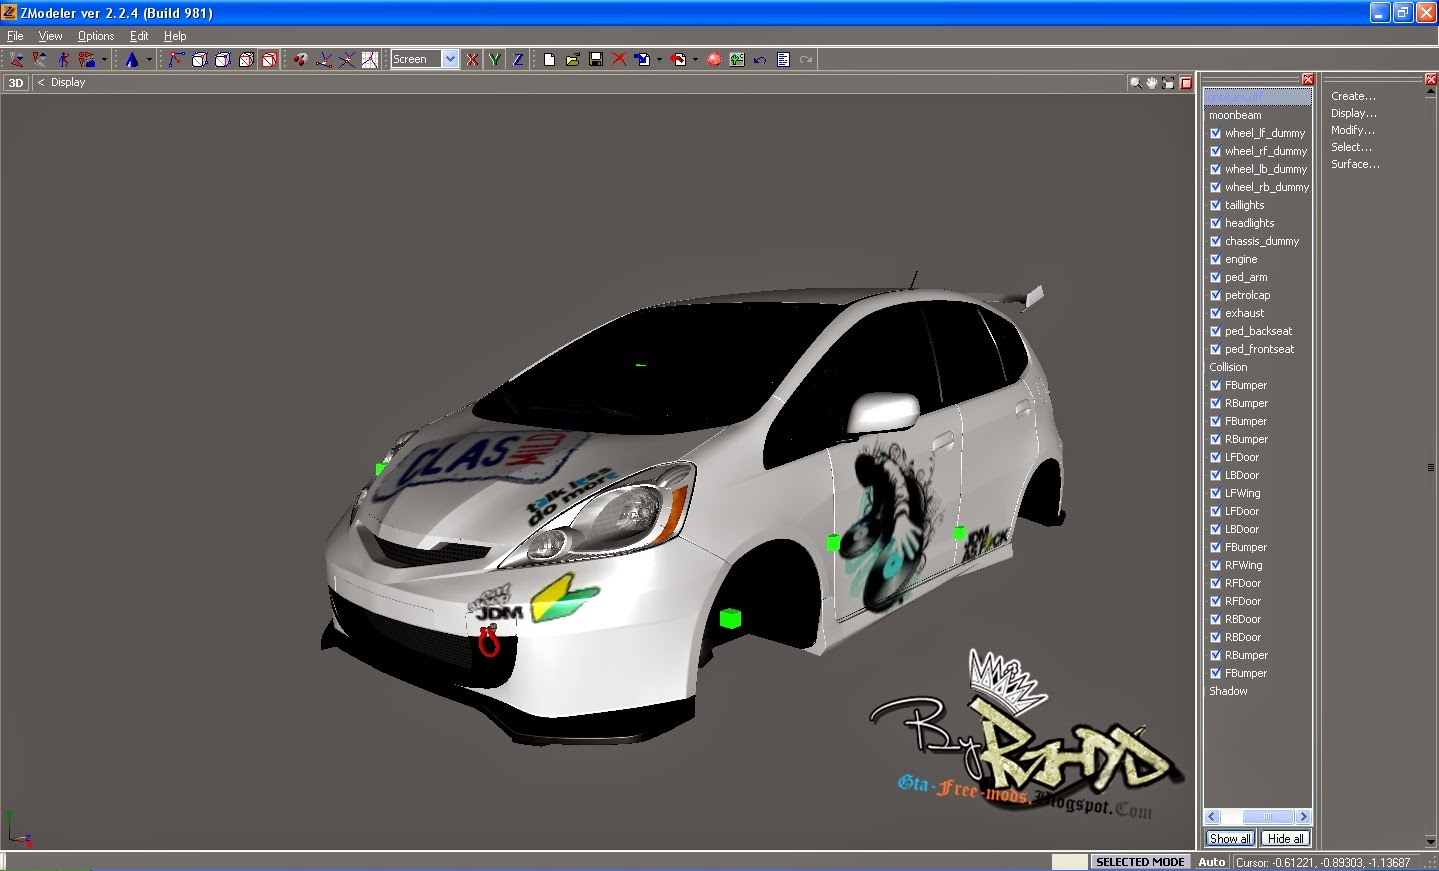 download zmodeler 2.2.6 full version